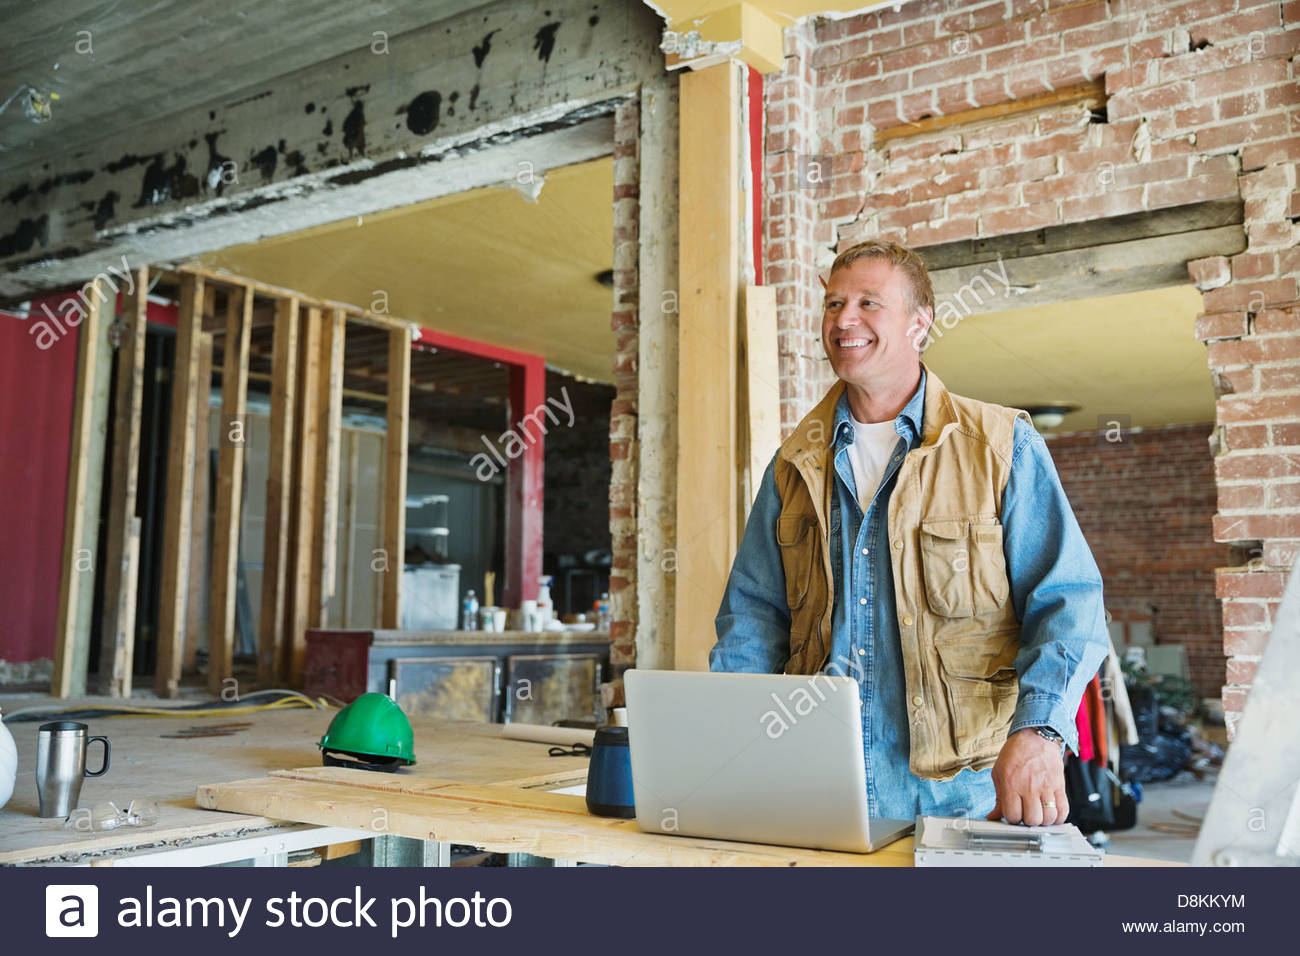 Foreman with laptop at construction site - Stock Image